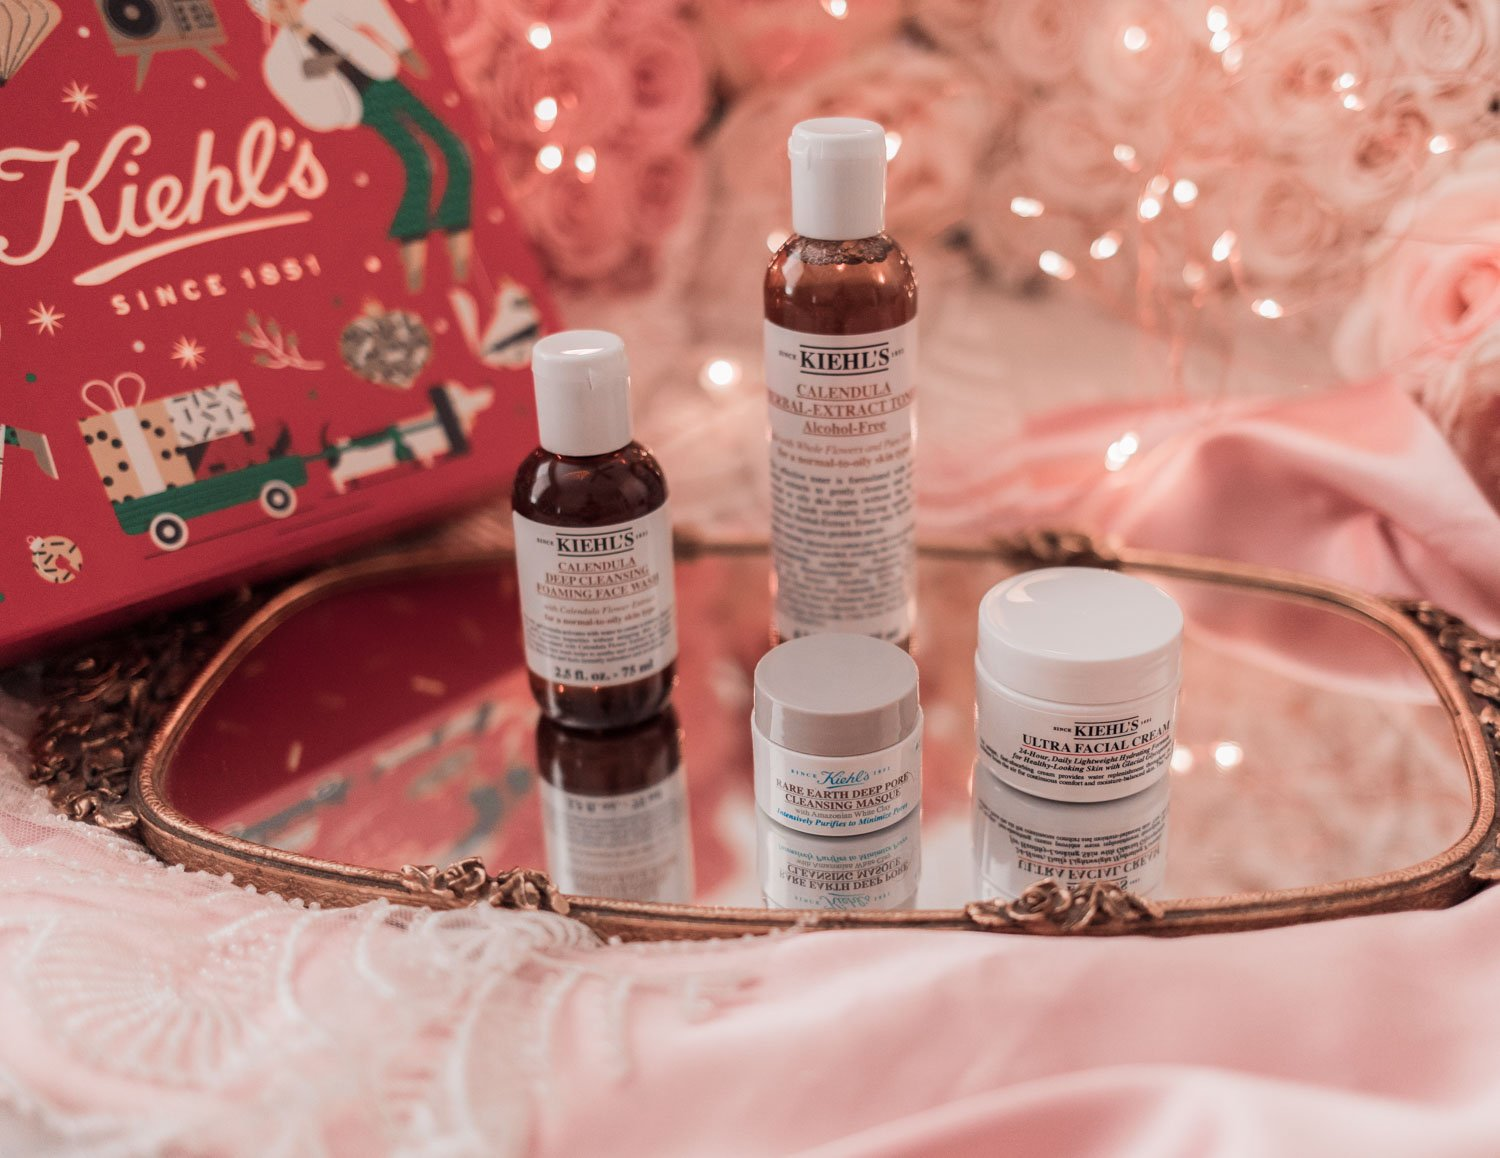 Fashion blogger Elizabeth Hugen of Lizzie in Lace shares her Work from Home Holiday Gift Guide including this Kiehl's Skincare gift set